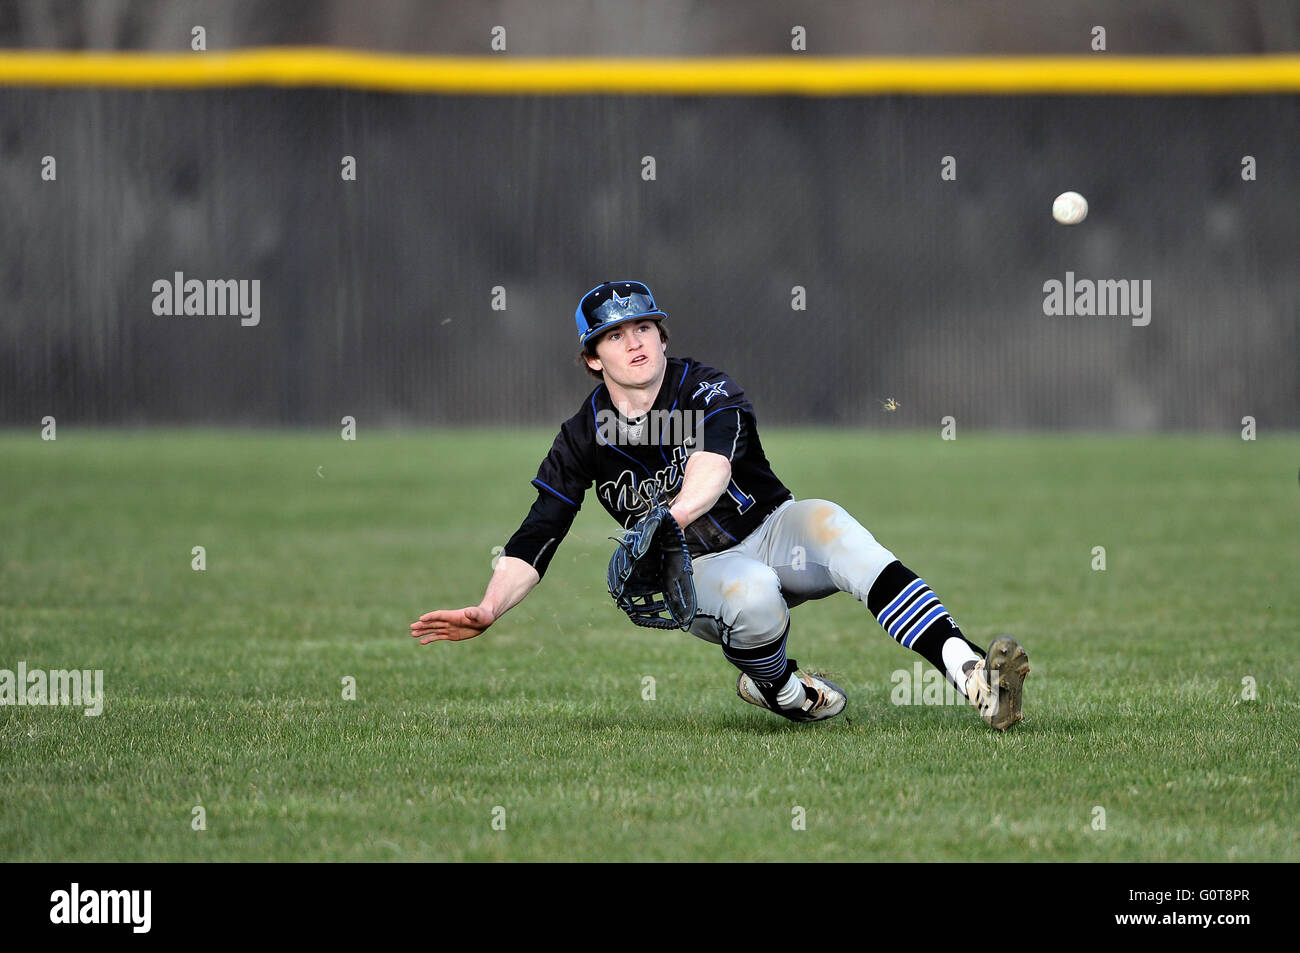 Center fielder making a diving attempt to come up with a soft line drive during a high school baseball game. USA. - Stock Image